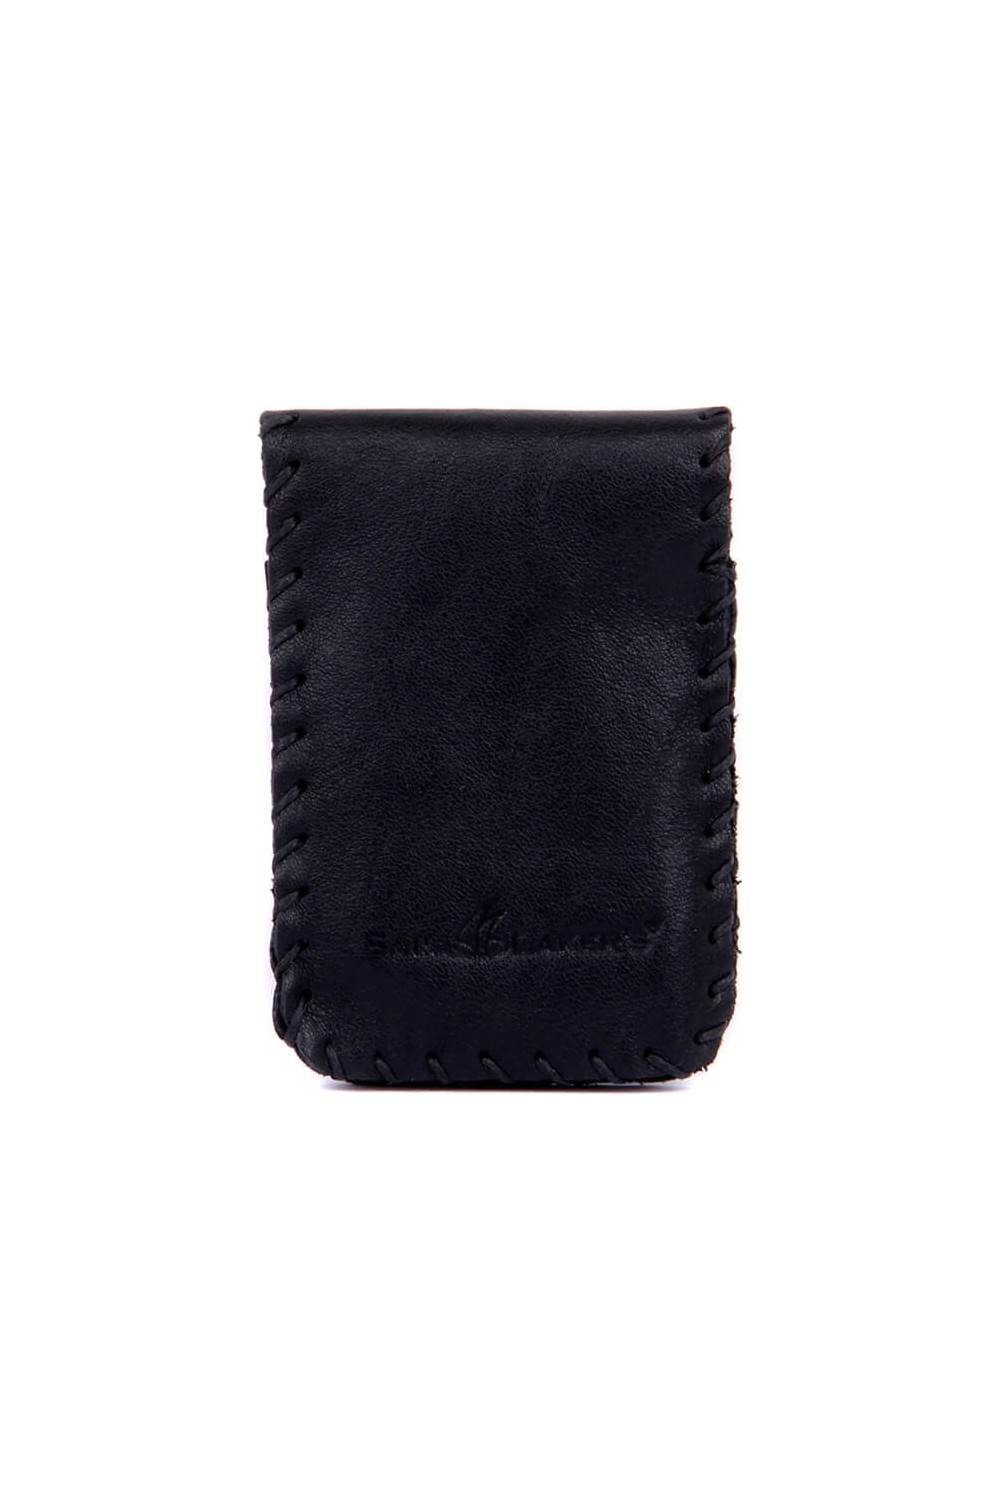 Sail Laker's Men's Cards Holder